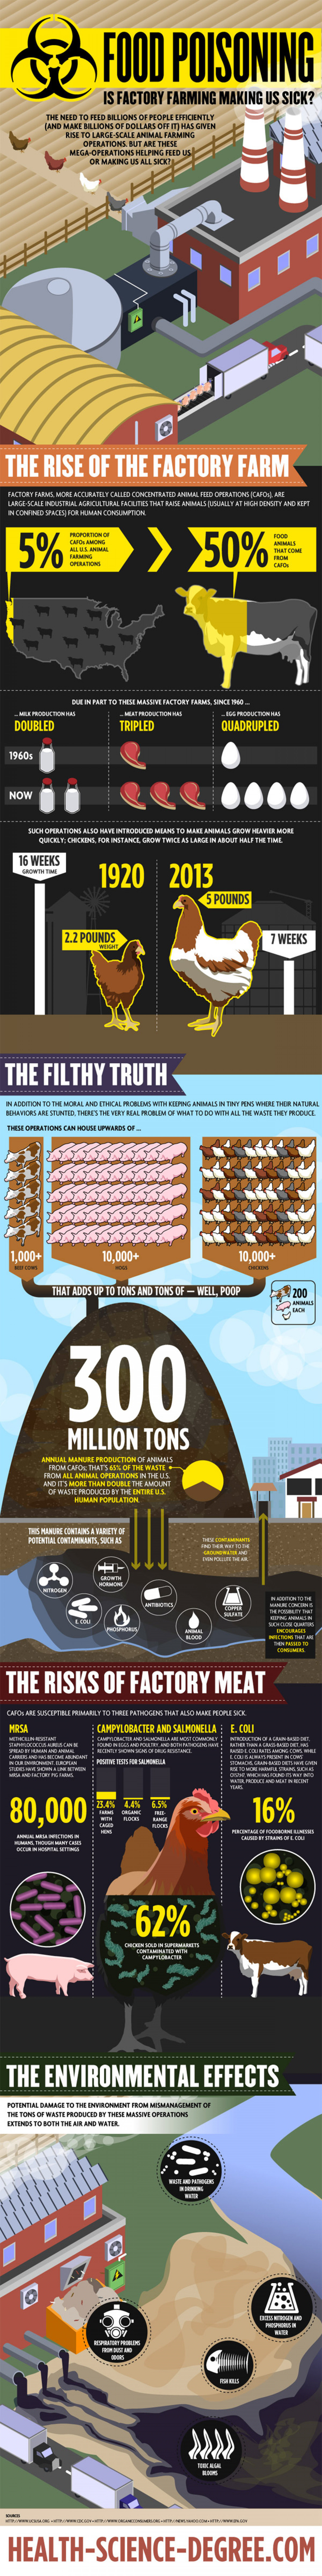 Food Poisoning: Is Factory Farming Making us Sick? Infographic